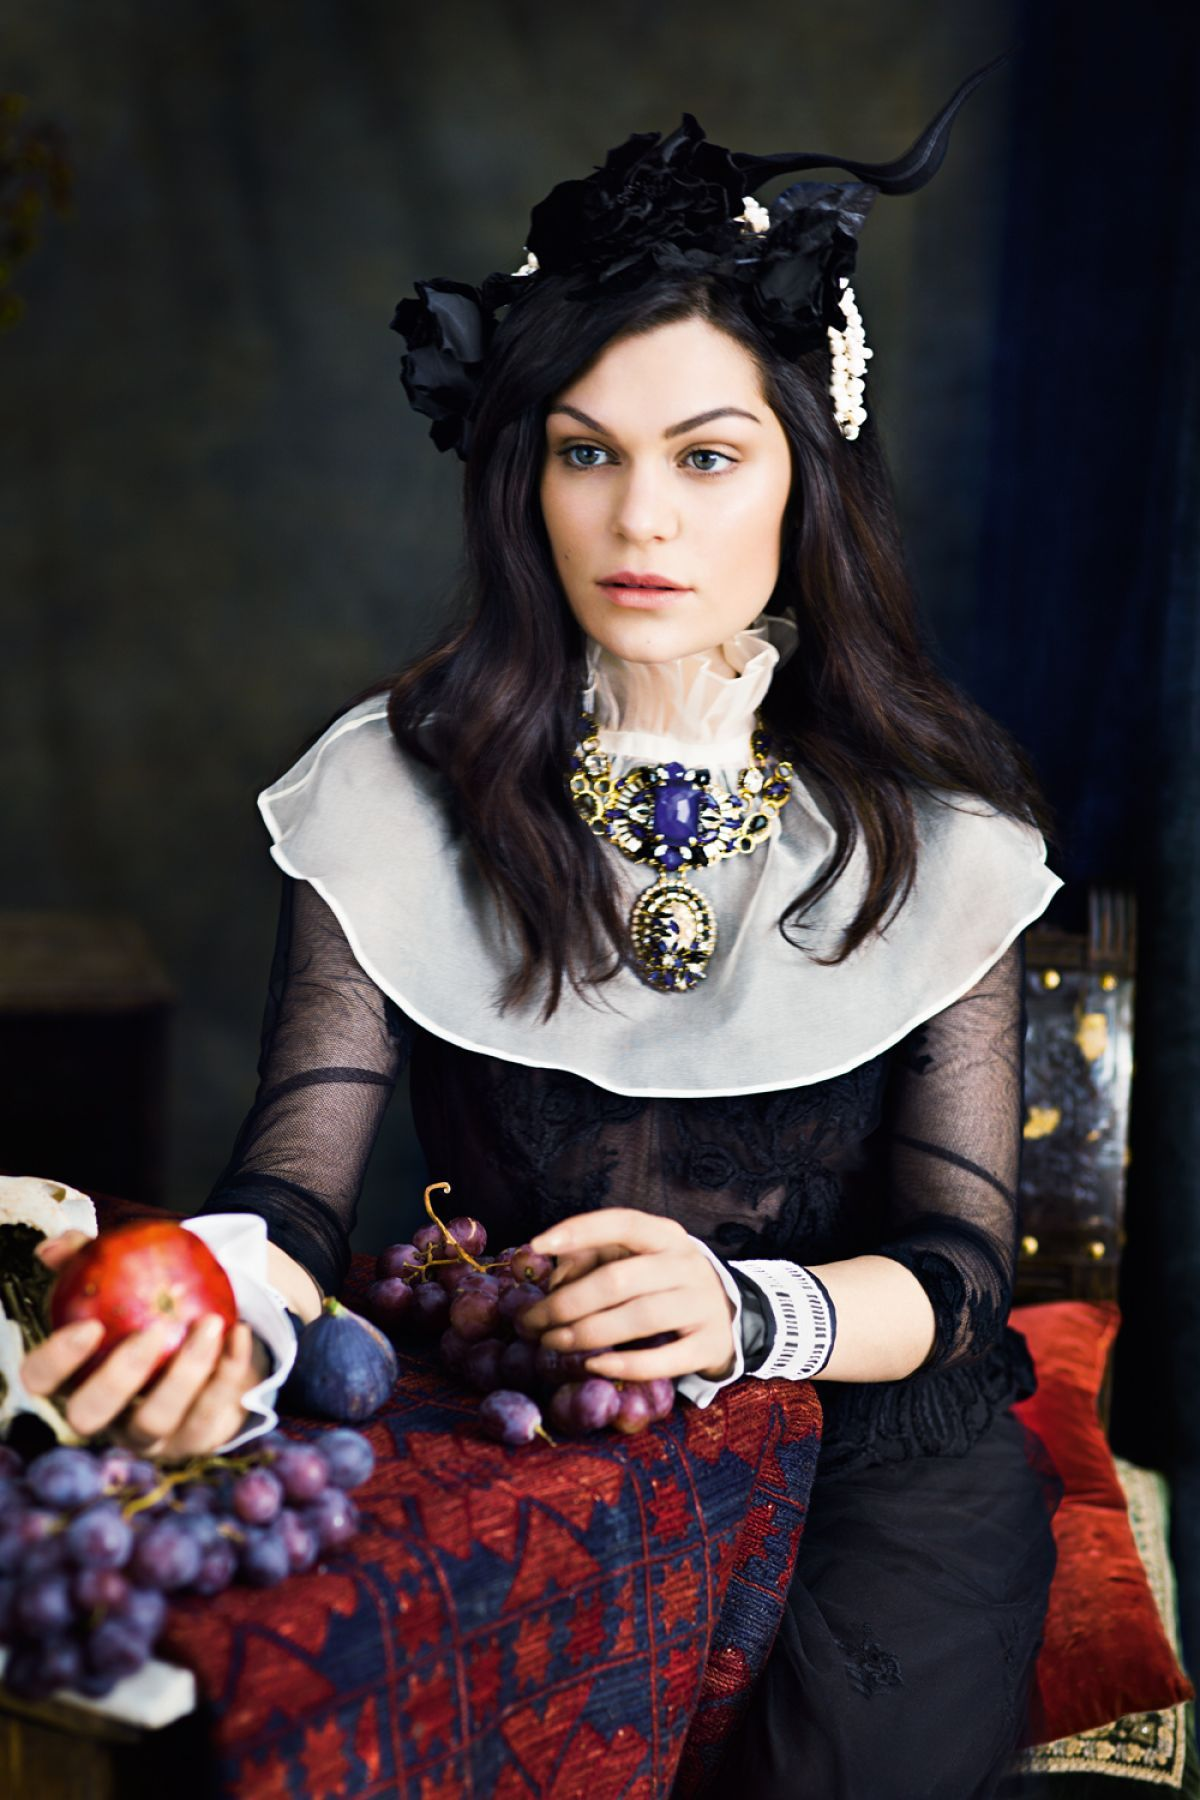 Jessie J for the December issue of InStyle magazine (2014)